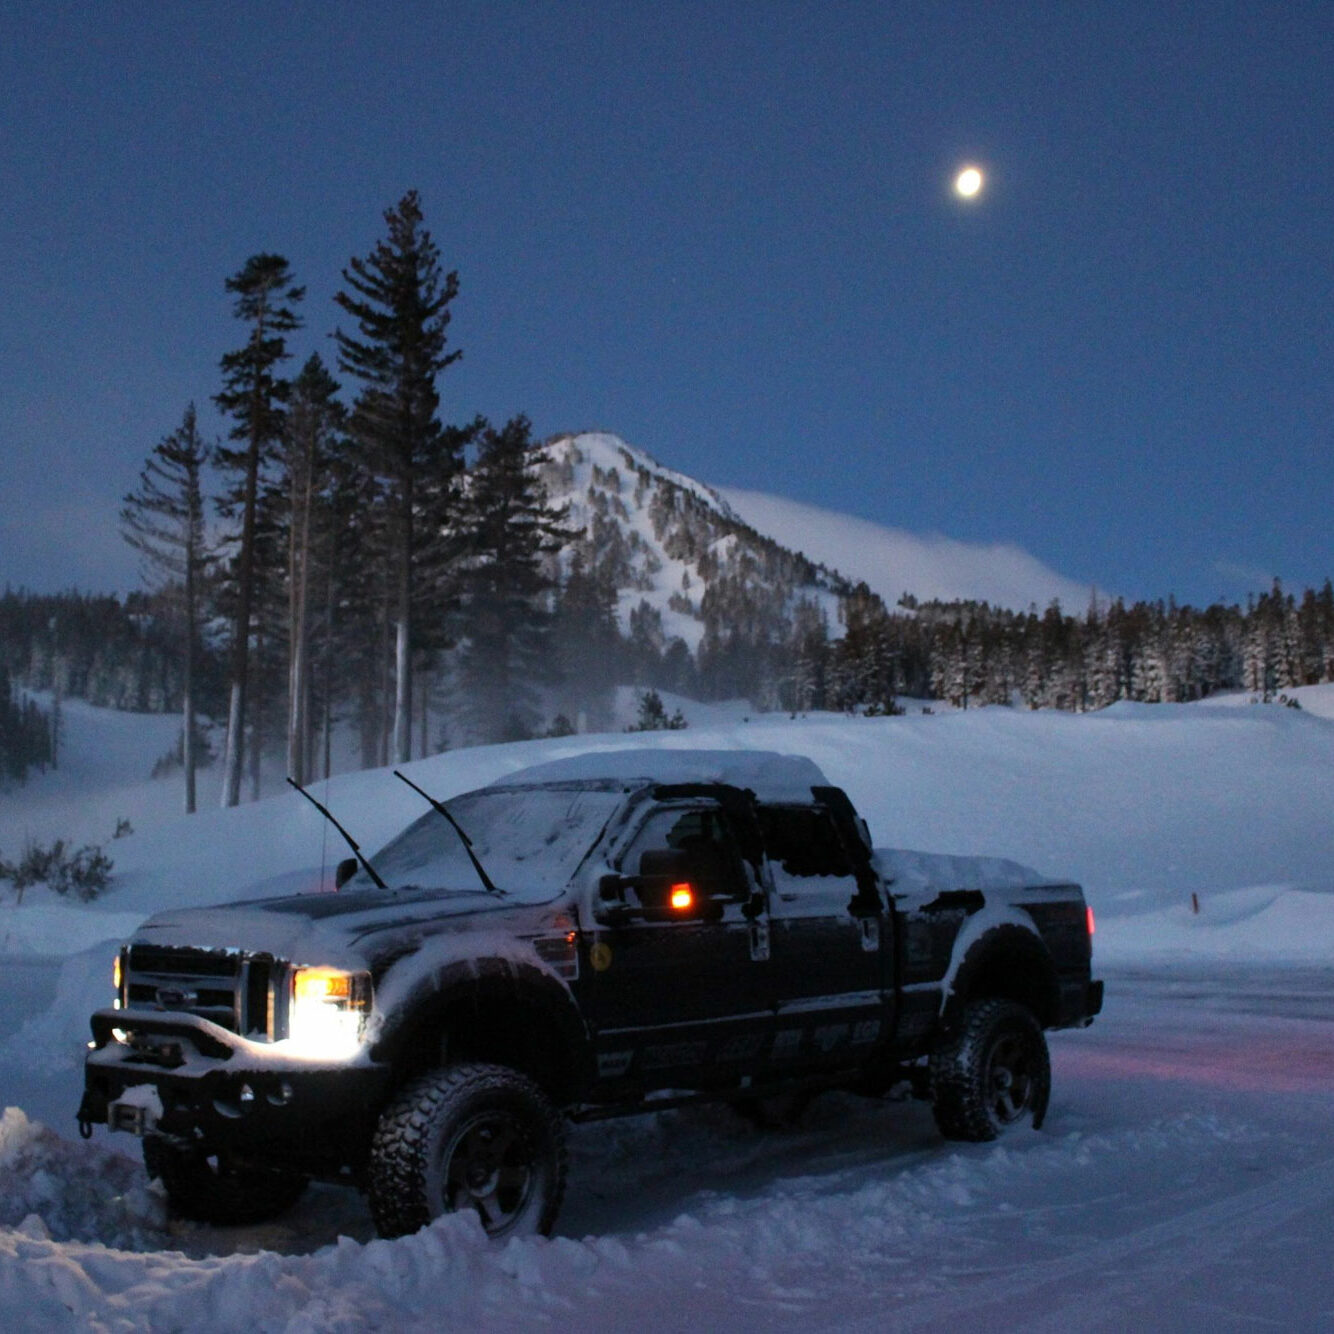 My 08 Ford Super Duty - Working hard in Mammoth after Snow Storm. #mammoth #Fordsuperduty